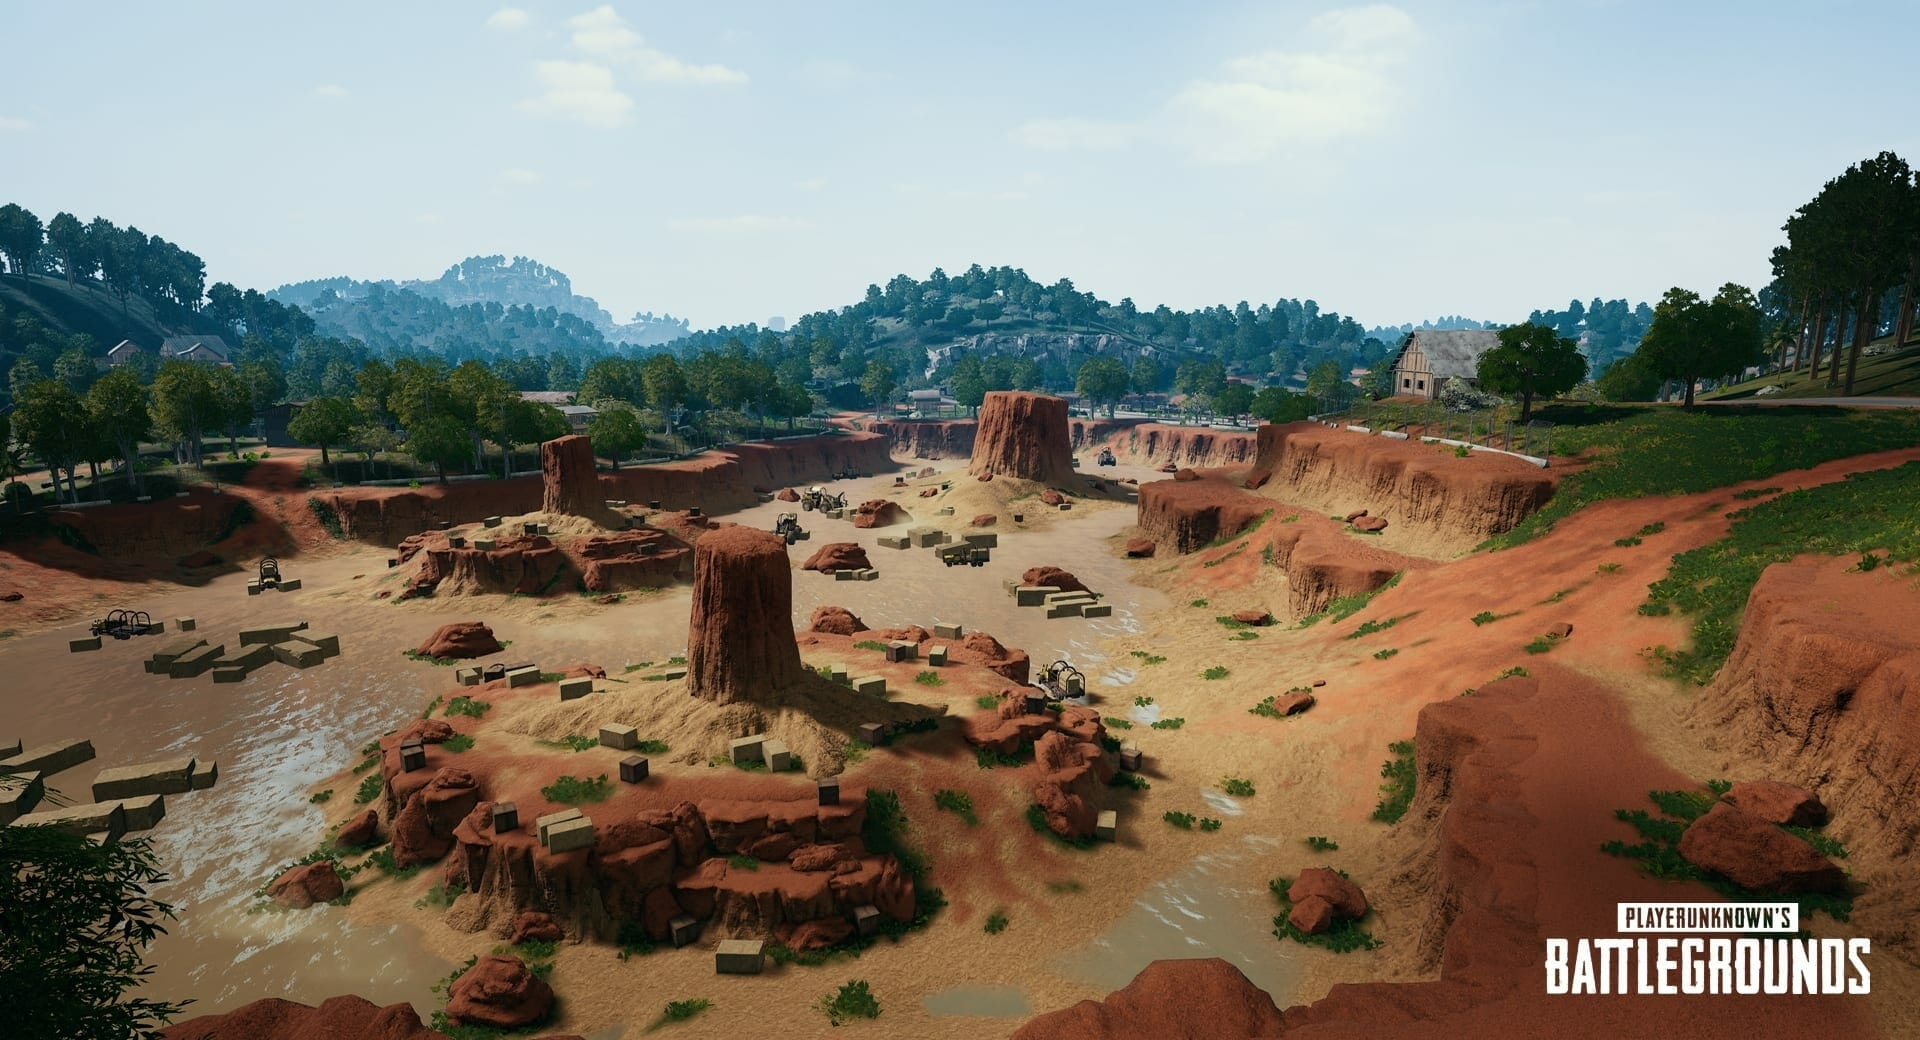 Pubg Update Pc Wallpaper: PUBG PC Sanhok Update Brings New Map And Gun, Patch Notes